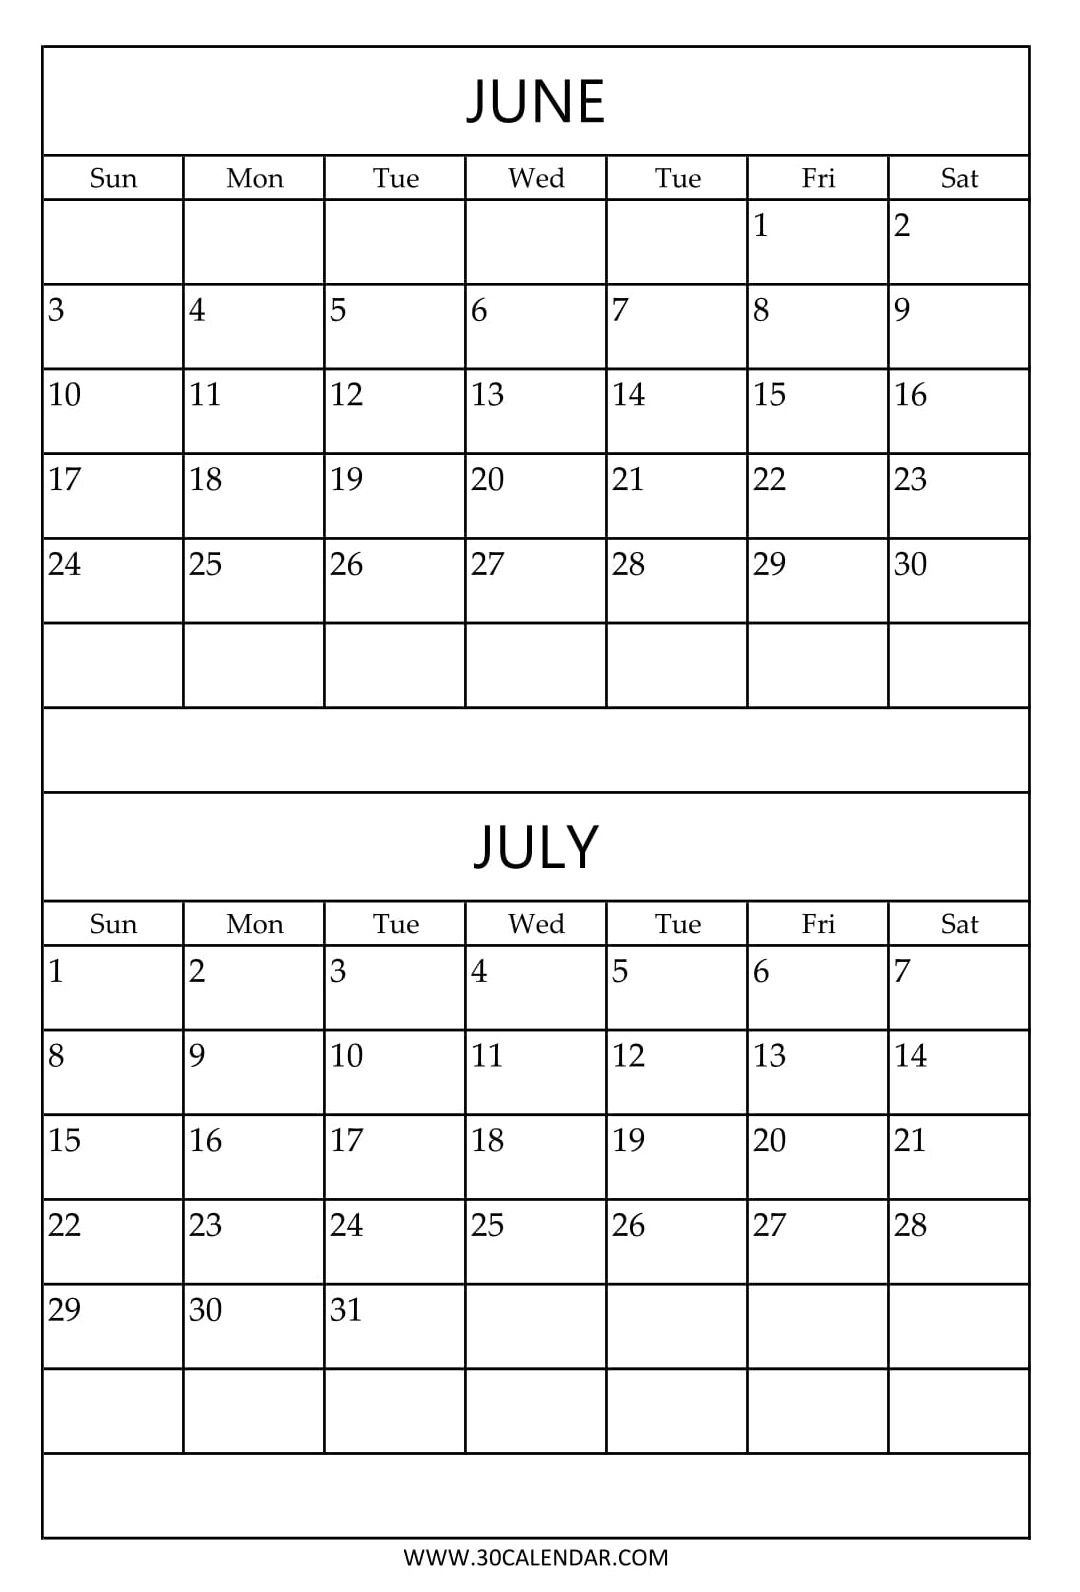 Free Printable Calendar June And July 2018 | Flash Design  June And July Printable Calendars